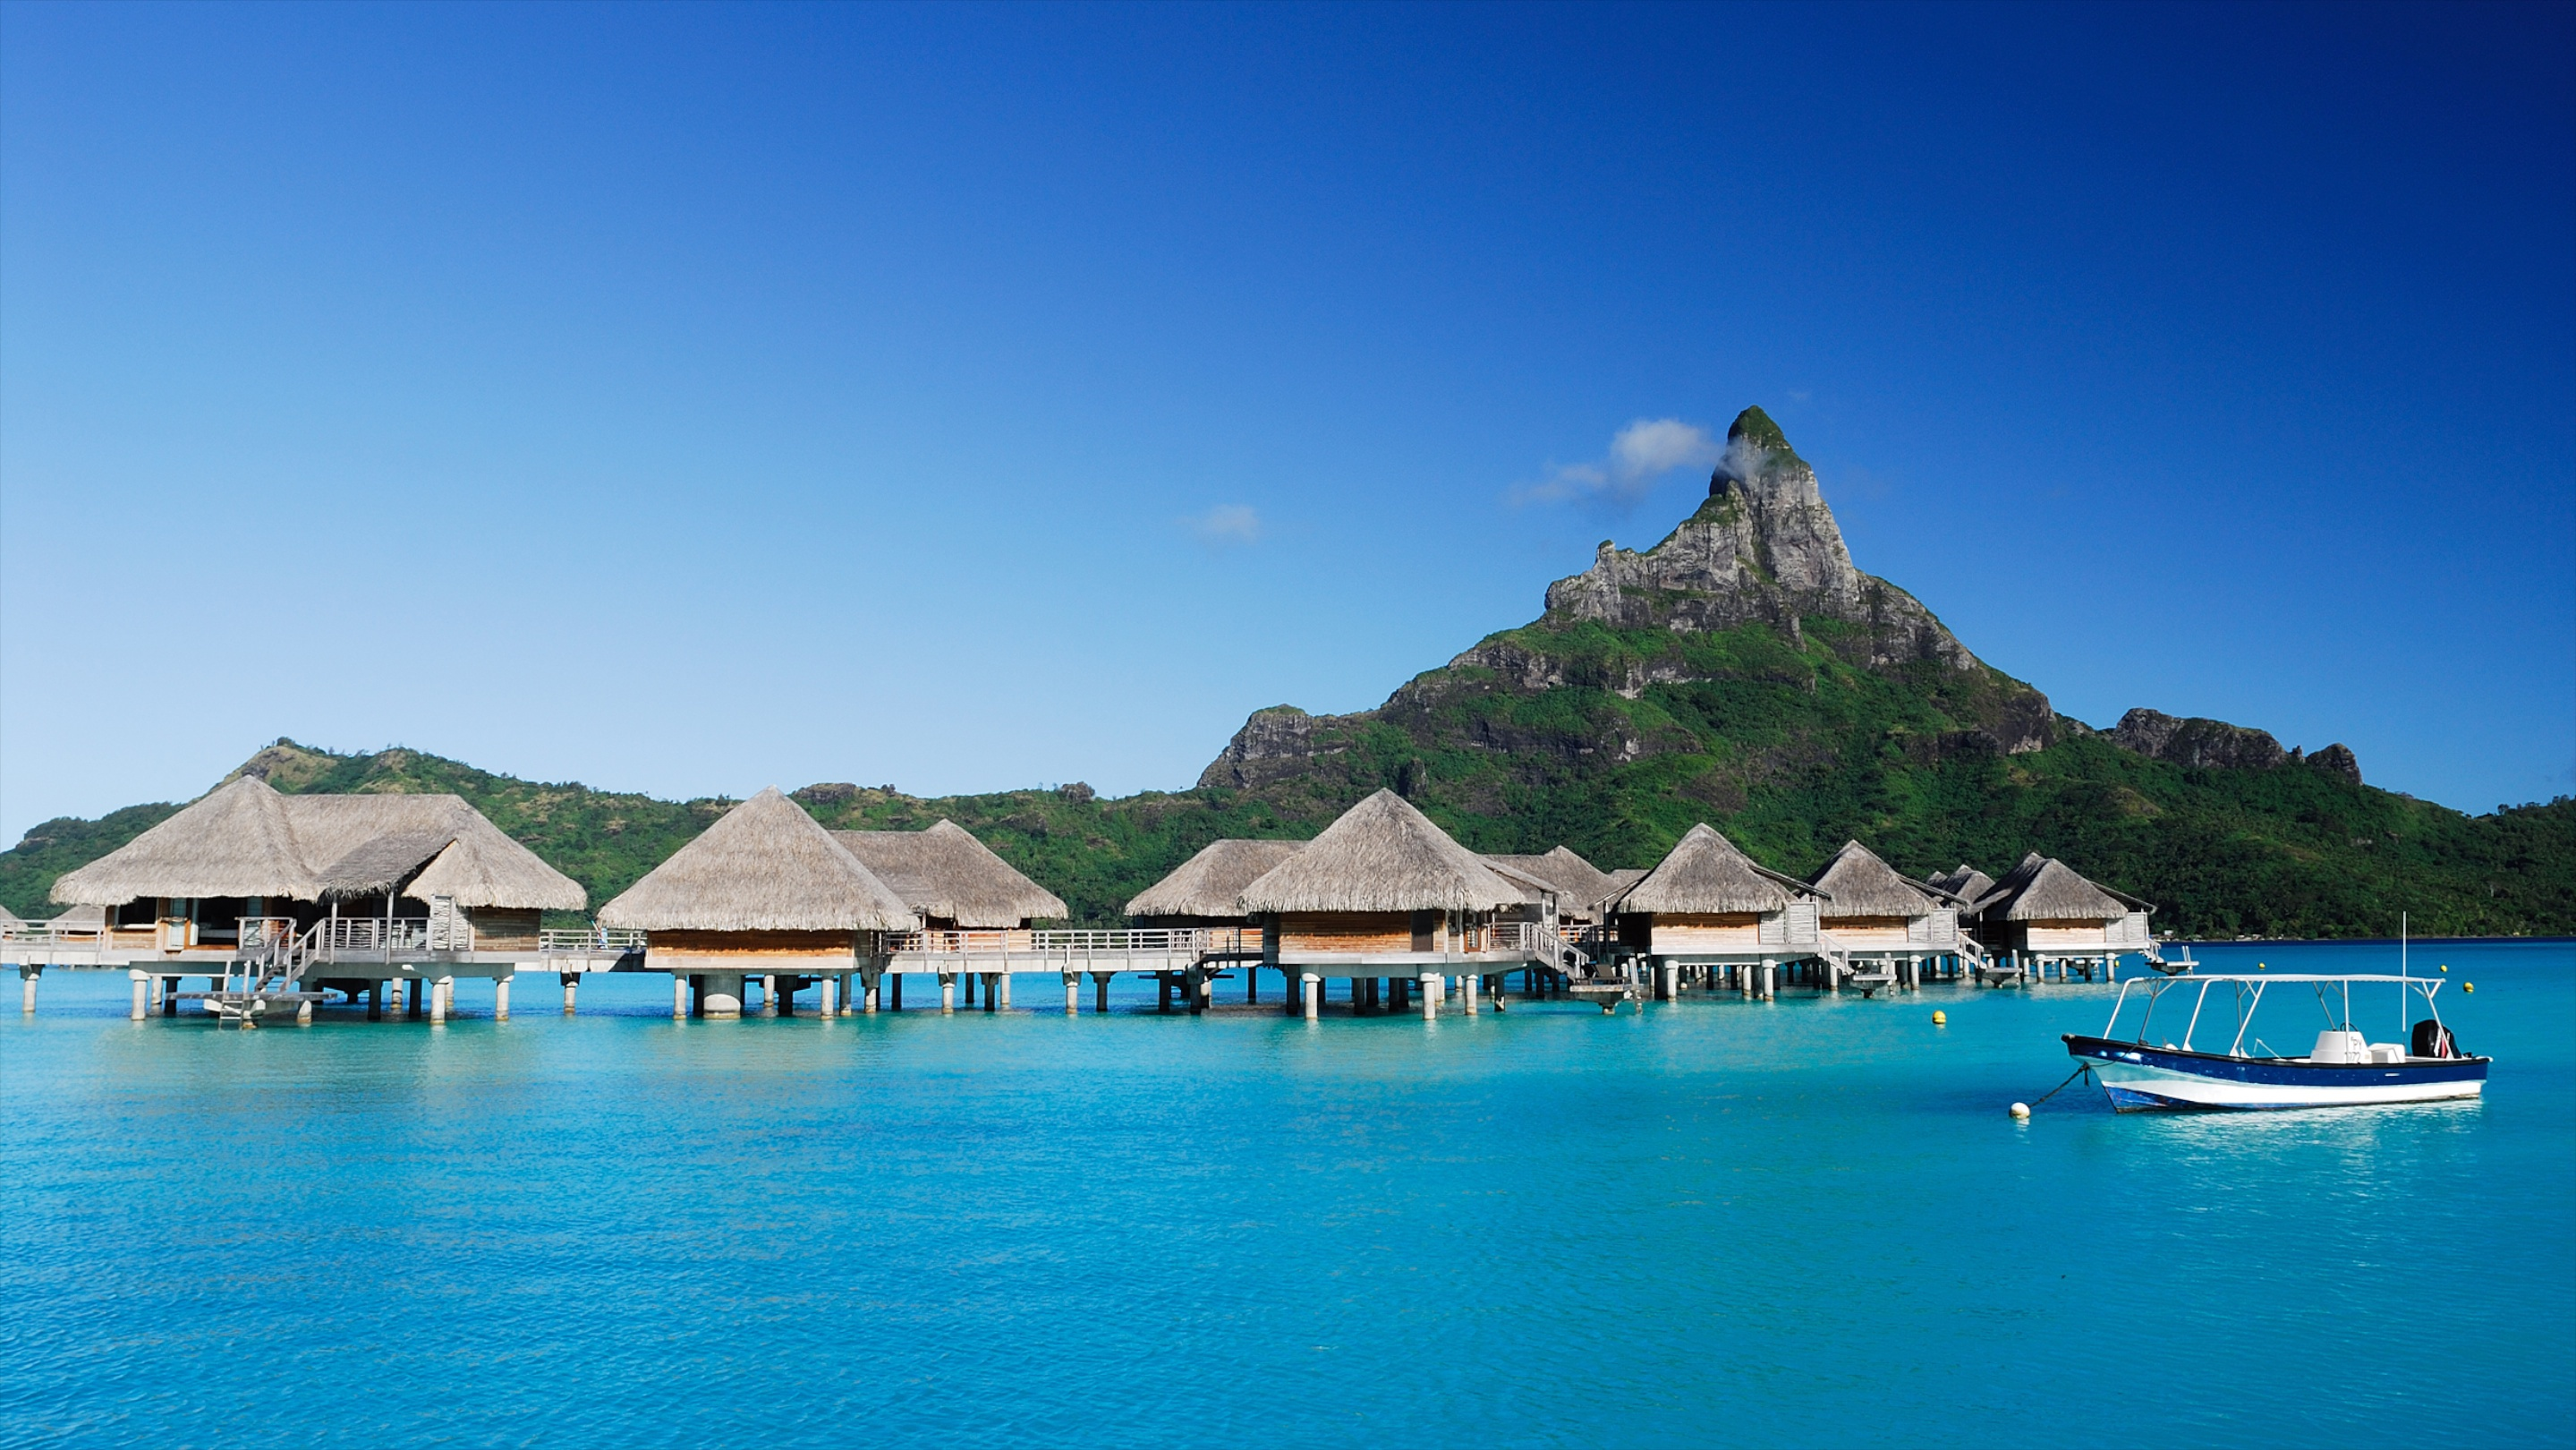 Bora Bora French Polynesia Vacations 2017: Package amp; Save Up to $500